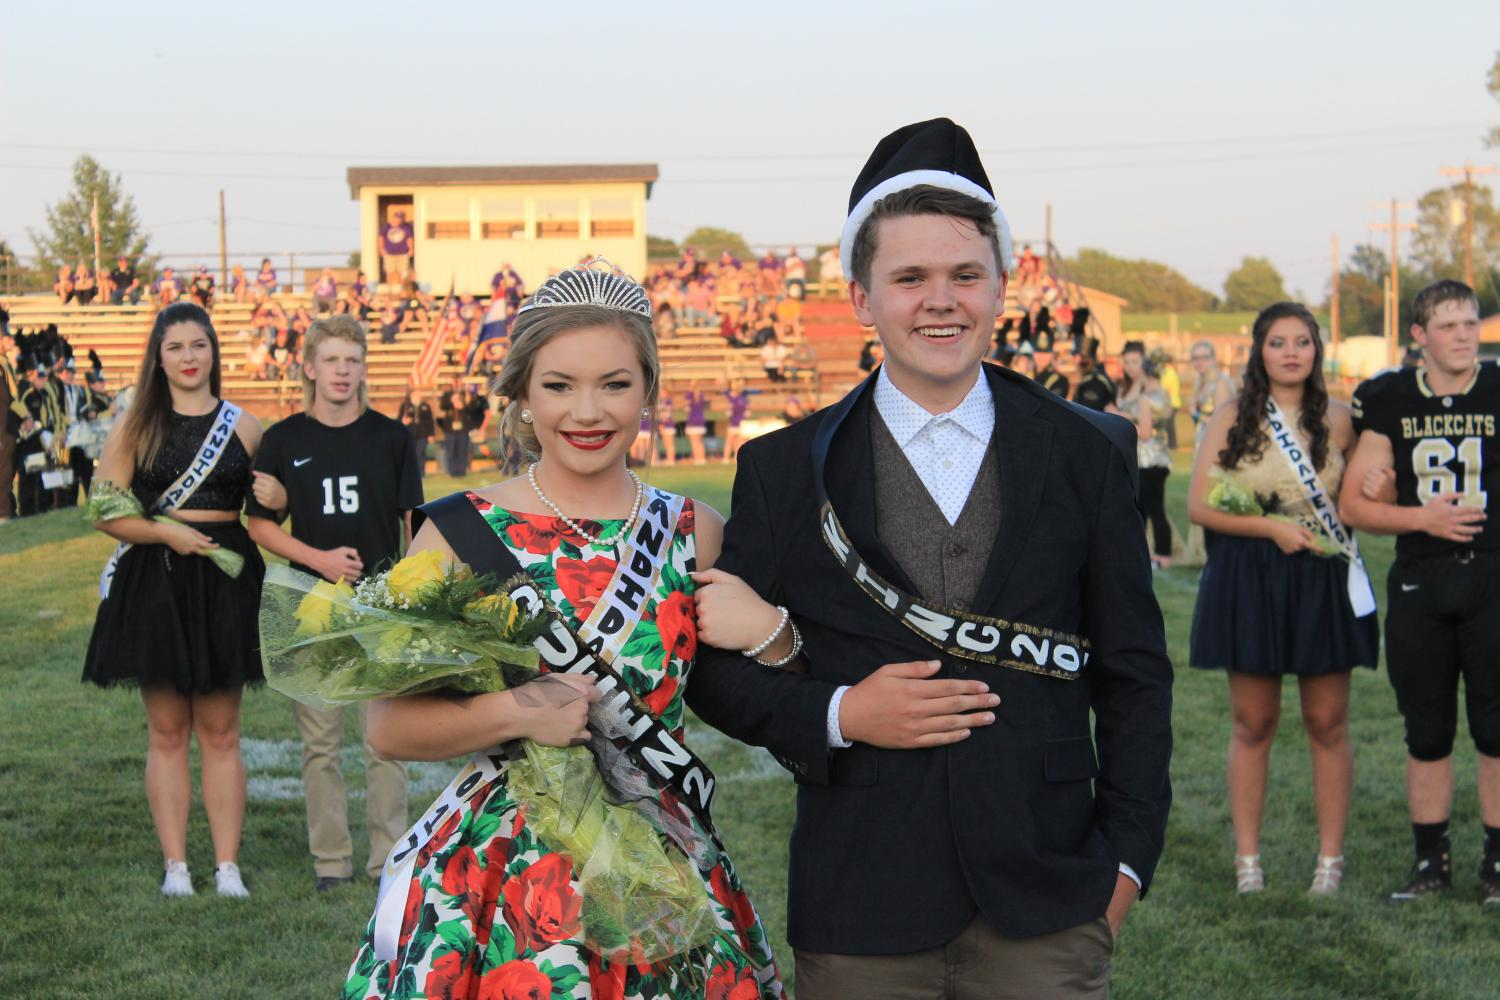 Queen Maddie Whitworth and King Skylar Tarkington